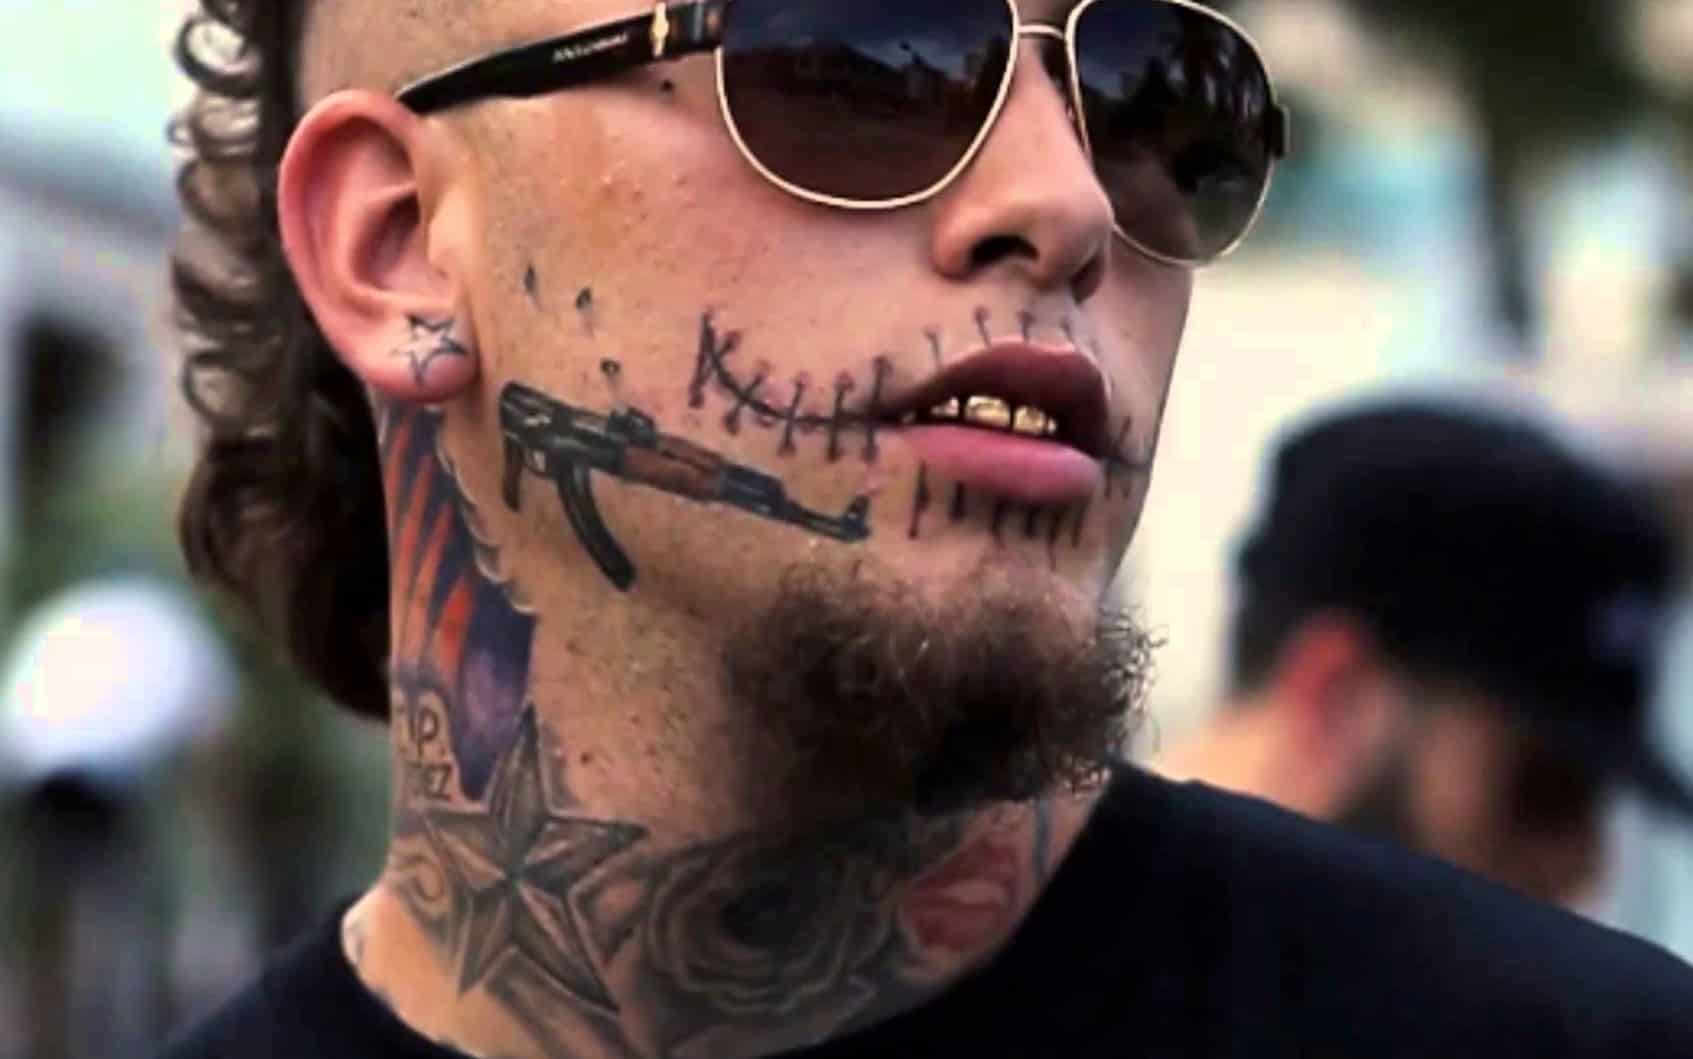 Stitches-Rapper: Age,Height,Net Worth,Wife,Tattoos,Death Rumors